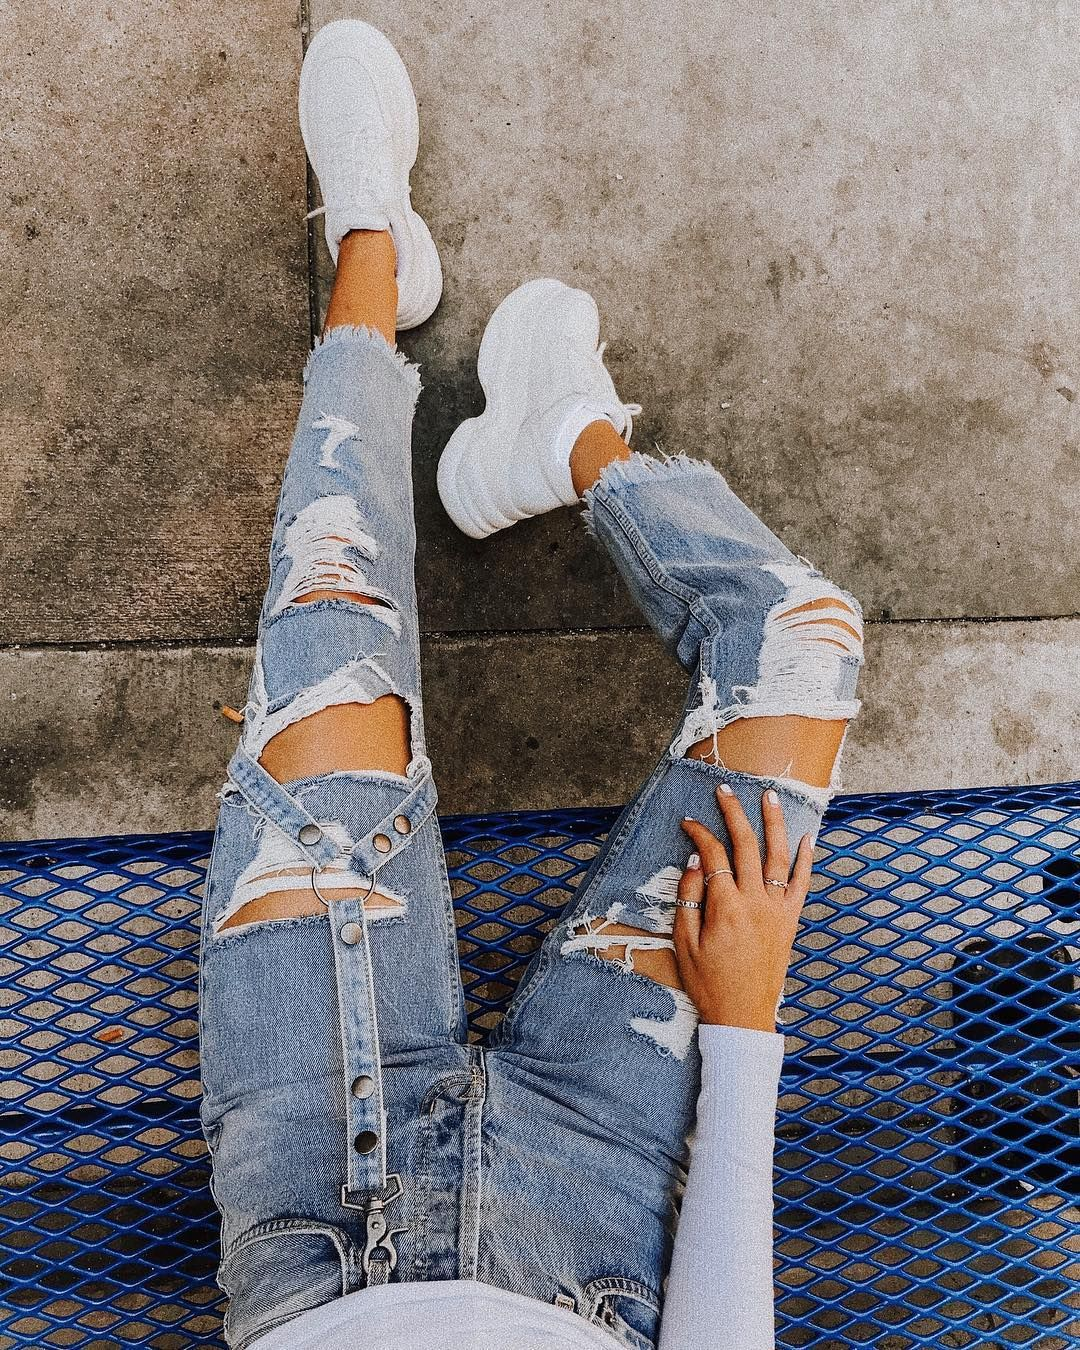 Carmar Denim On Instagram The Mira Emelia Harness Jeans Your New Best Friend Tap To Shop Now Carmardenim Carmarseasonalsale Carmar Denim Shop Now